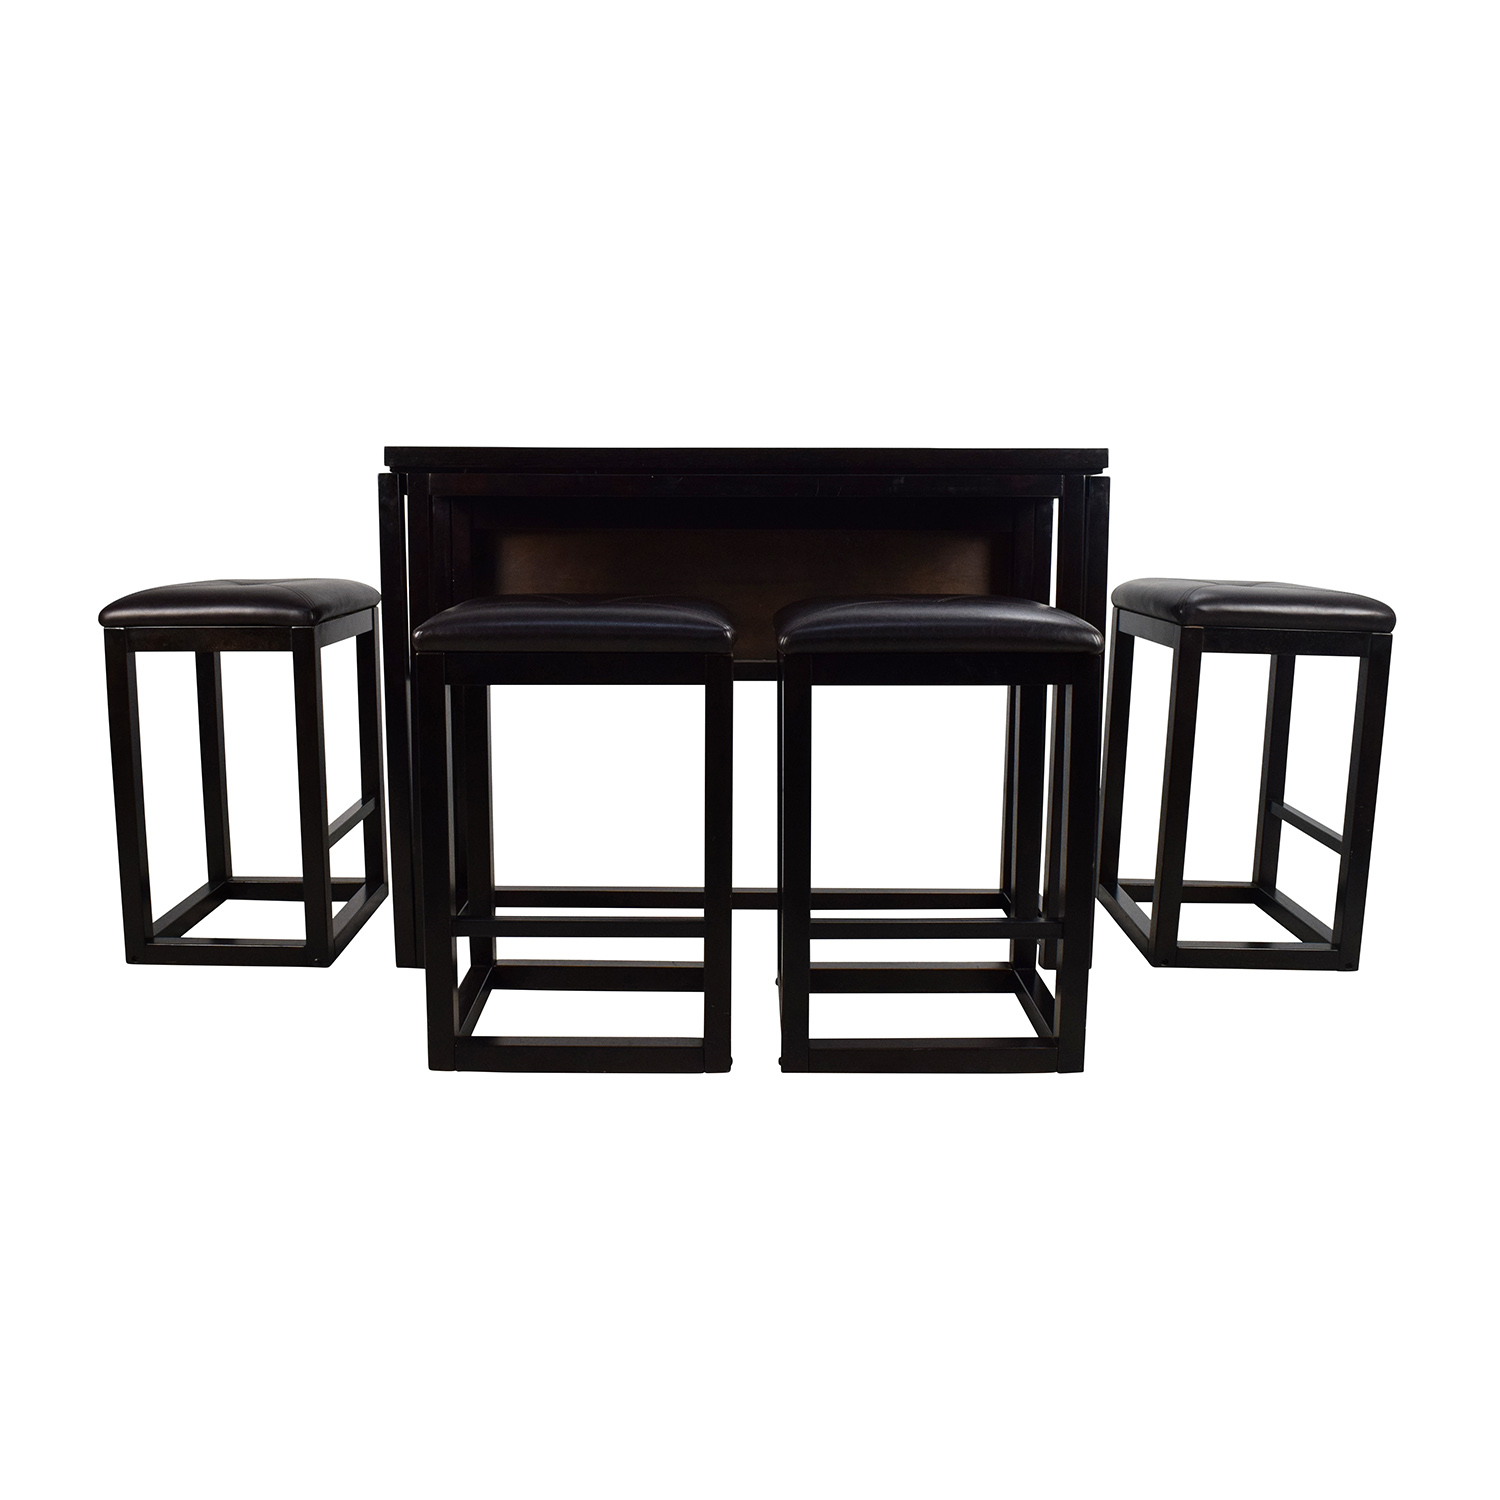 https://images.furnishare.com/13031/shop/tables/dining-sets/second-hand-counter-height-extendable-dining-table-with-stools.jpeg